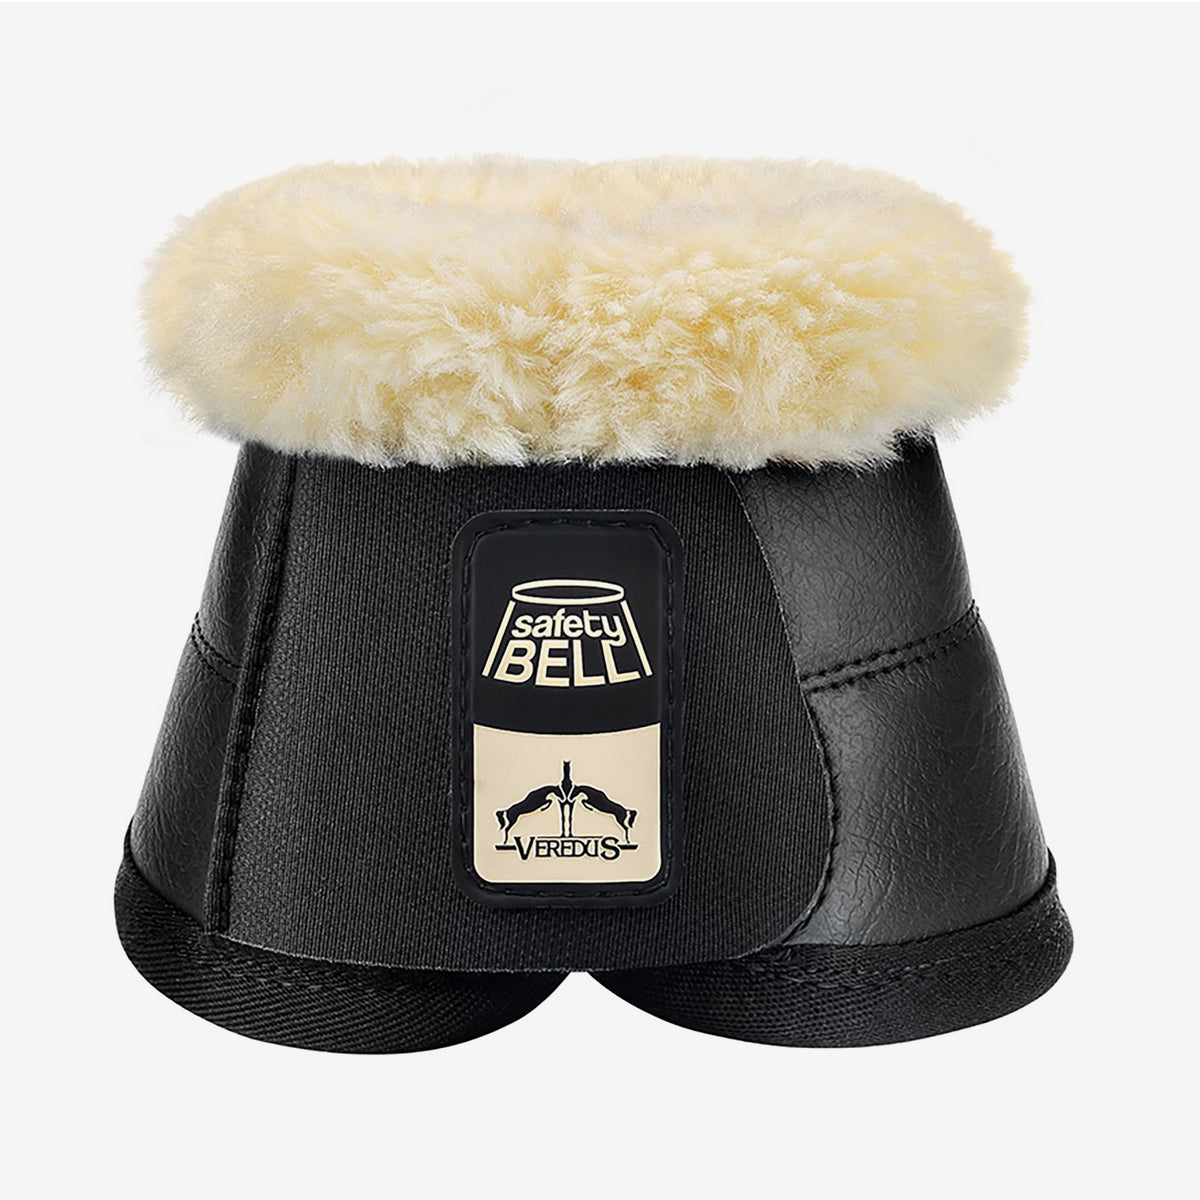 Black Veredus Safety Bell SAVE the SHEEP Overreach Boot